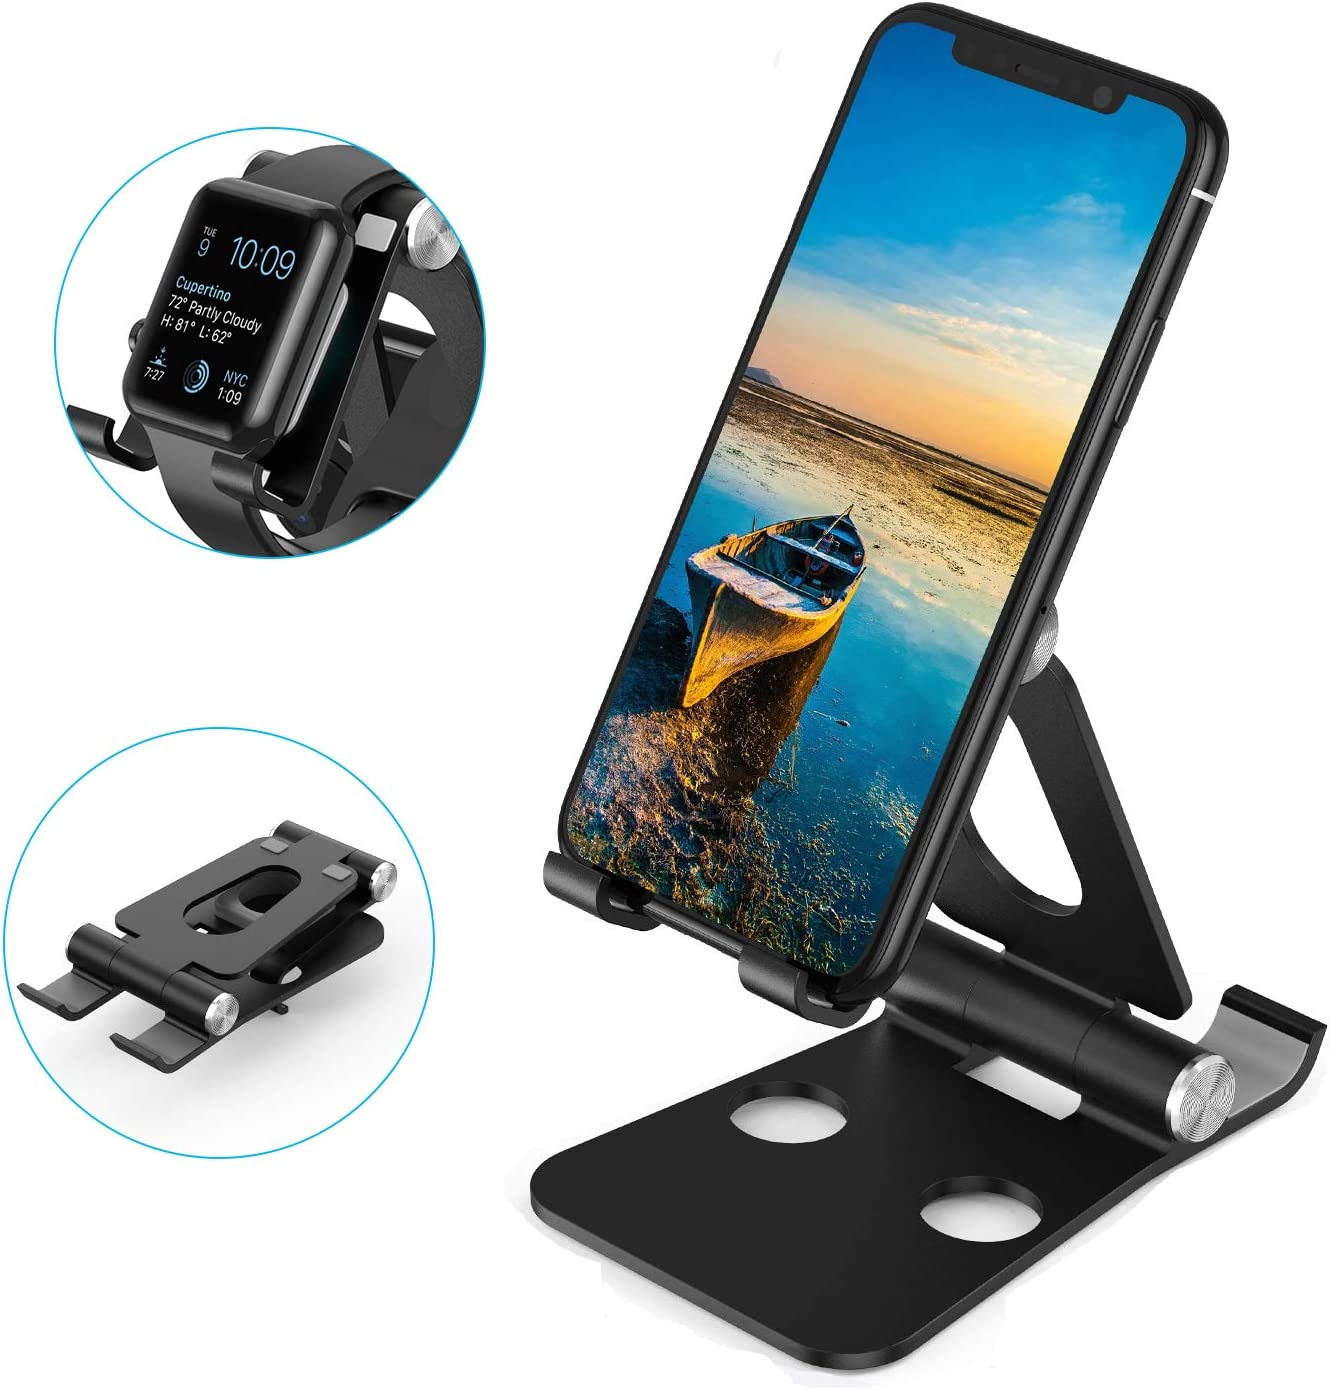 SAINUOD Adjustable Cell Phone Stand Thickness Aluminum Black 2 in 1 Universal Desktop Apple Watch Holder Compatible for iPhone 11 Pro Max SE XS XR 8 Plus 6 7 6S